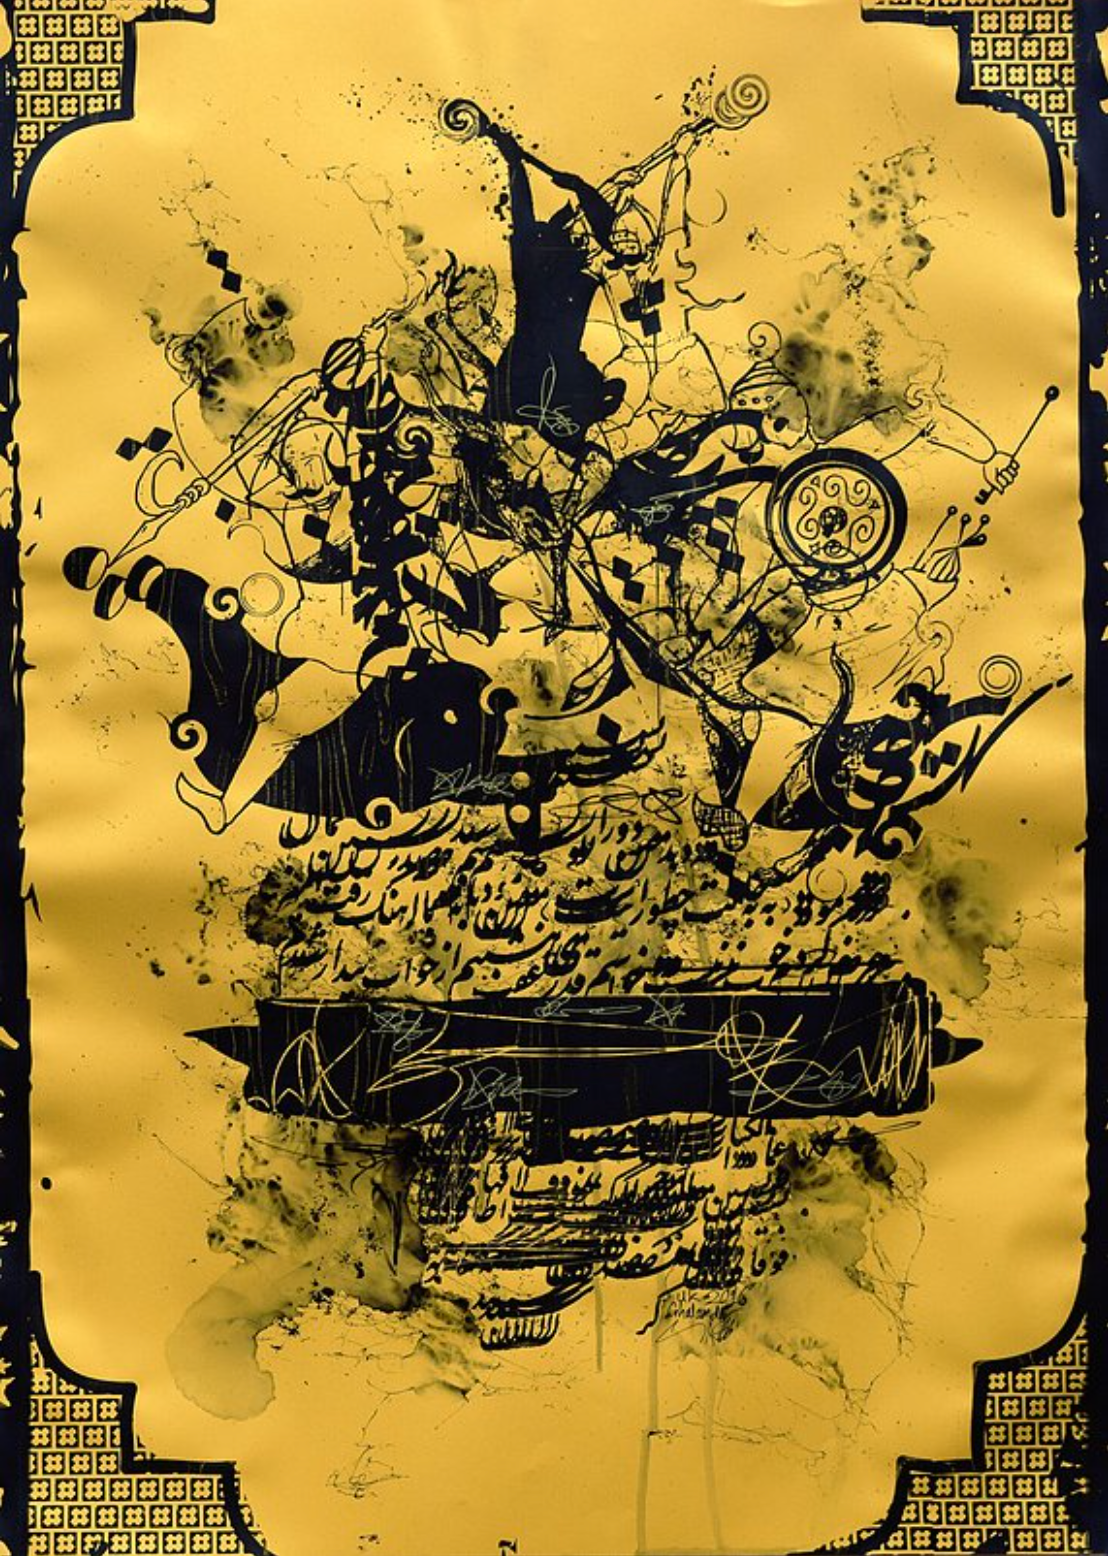 Ghalamdar, Untitled, unique screen print, ink and spray paint on pearlscent paper, 84 x 60 cm, 2016